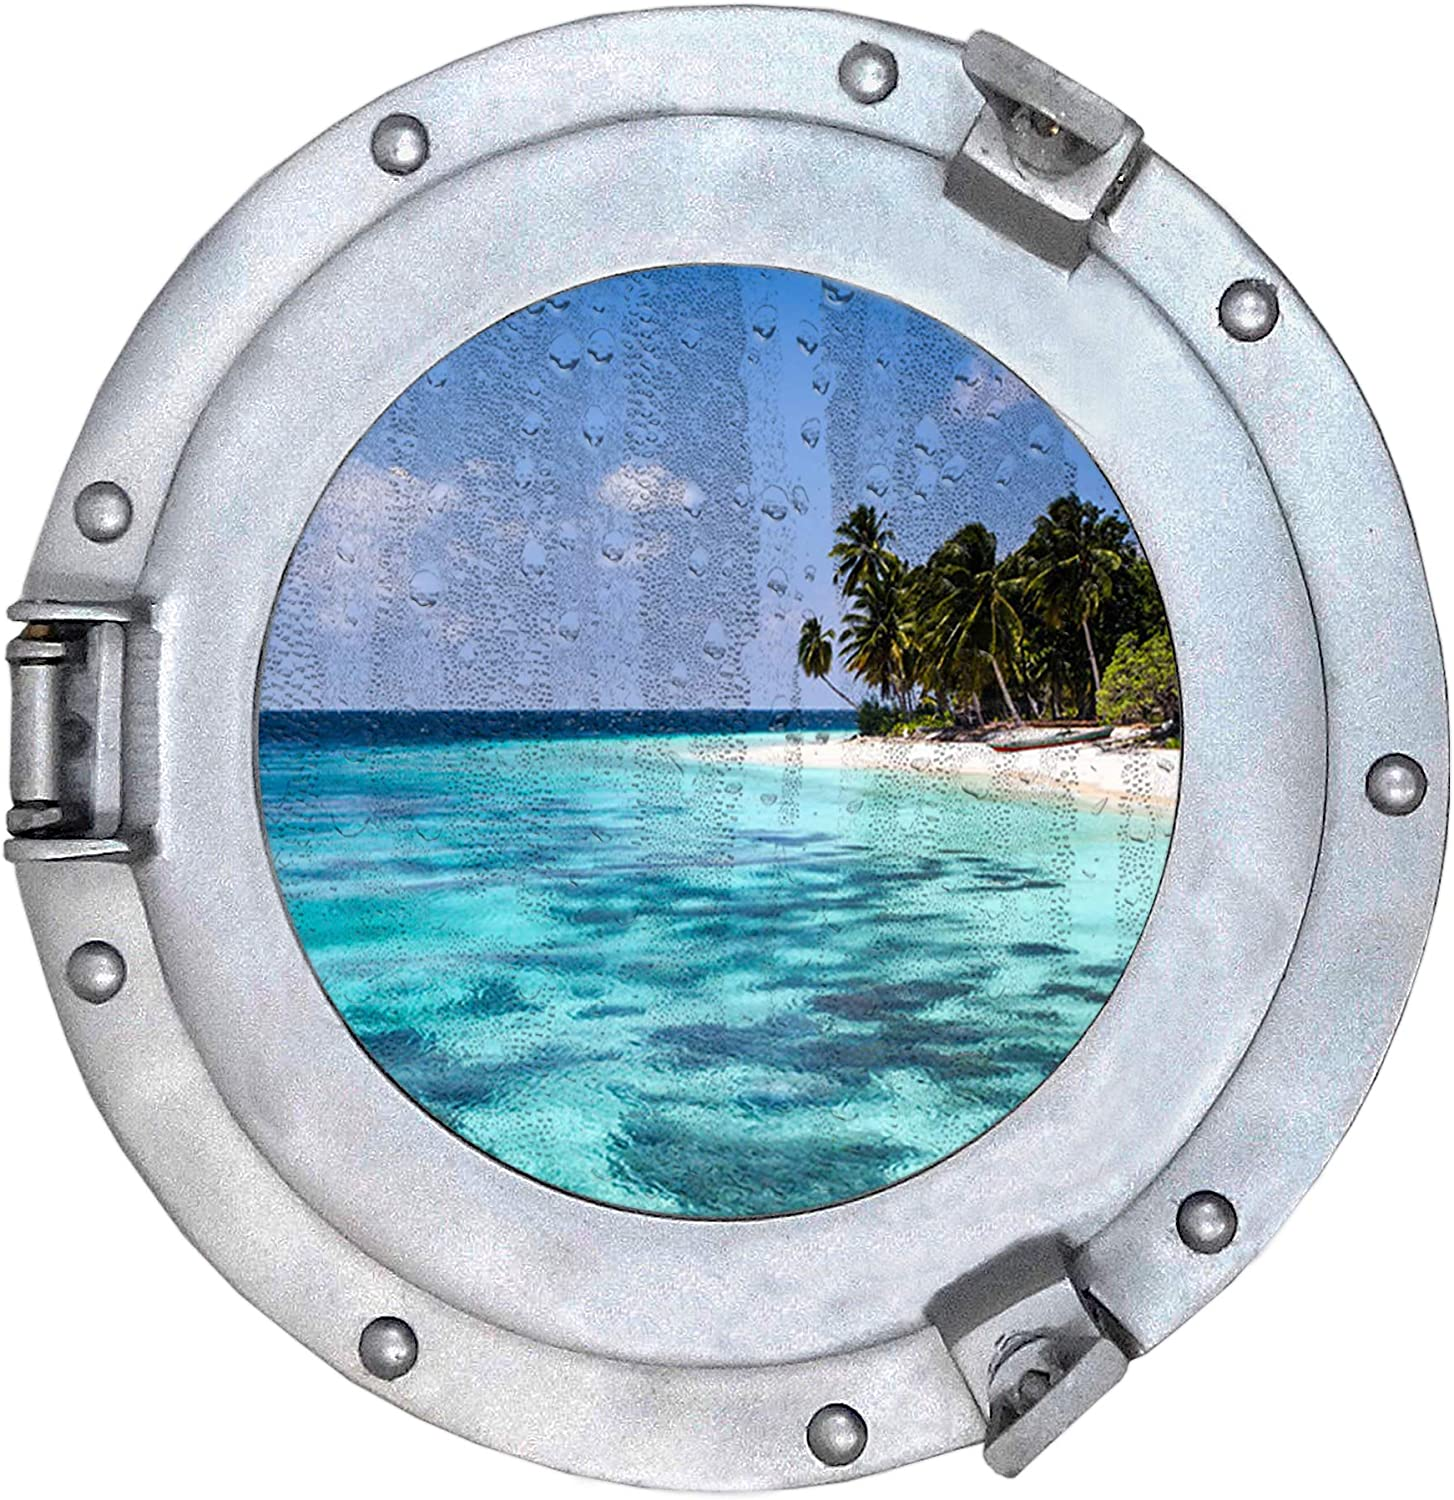 Nautical Round Ship Porthole Windows - Maritime Nautical Home Decor Boat Fan Gift (Silver Glass)